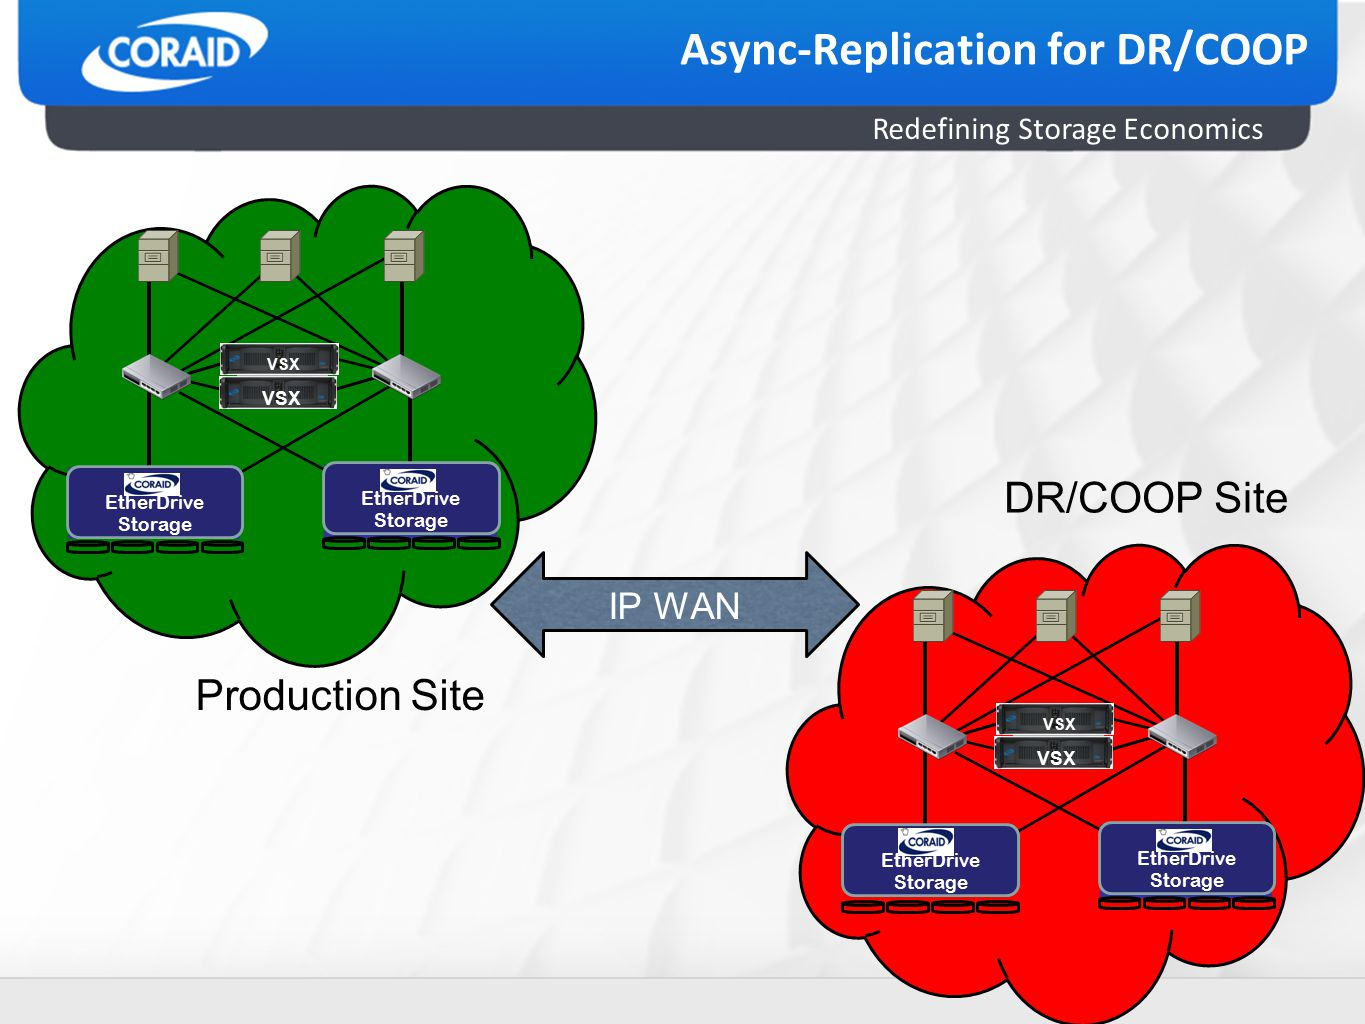 Redefining Storage Economics Async-Replication for DR/COOP VSX 2020 1010 1 EtherDrive Storage VSX 2020 1010 1 EtherDrive Storage EtherDrive Storage VSX Production Site DR/COOP Site IP WAN EtherDrive Storage